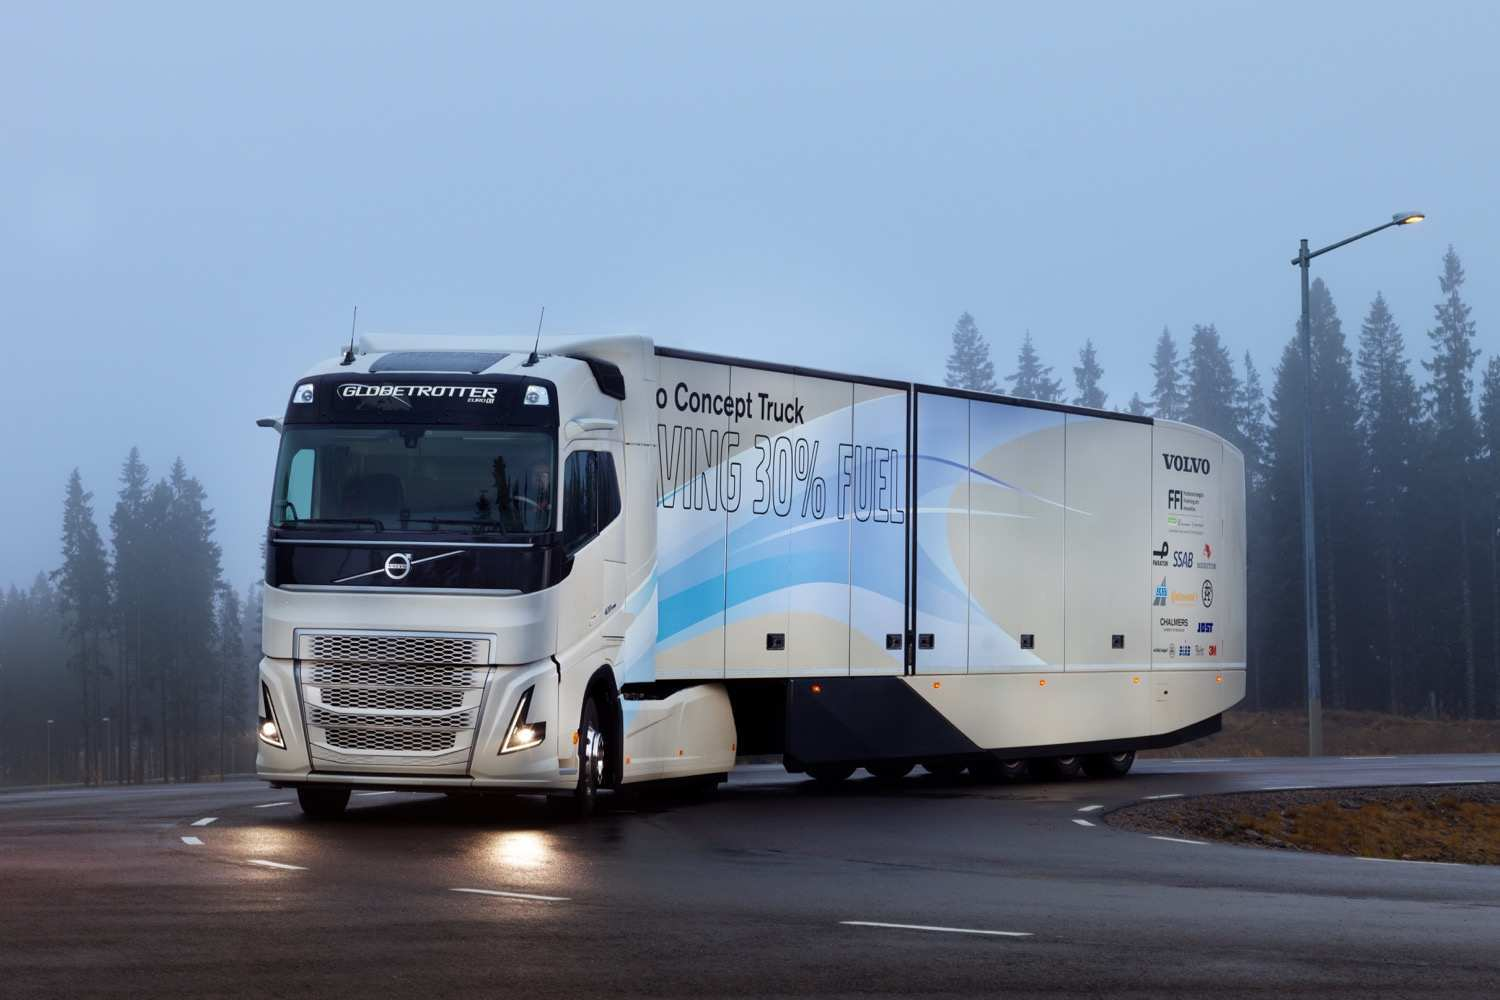 91 Great Volvo Fh16 2019 Redesign with Volvo Fh16 2019